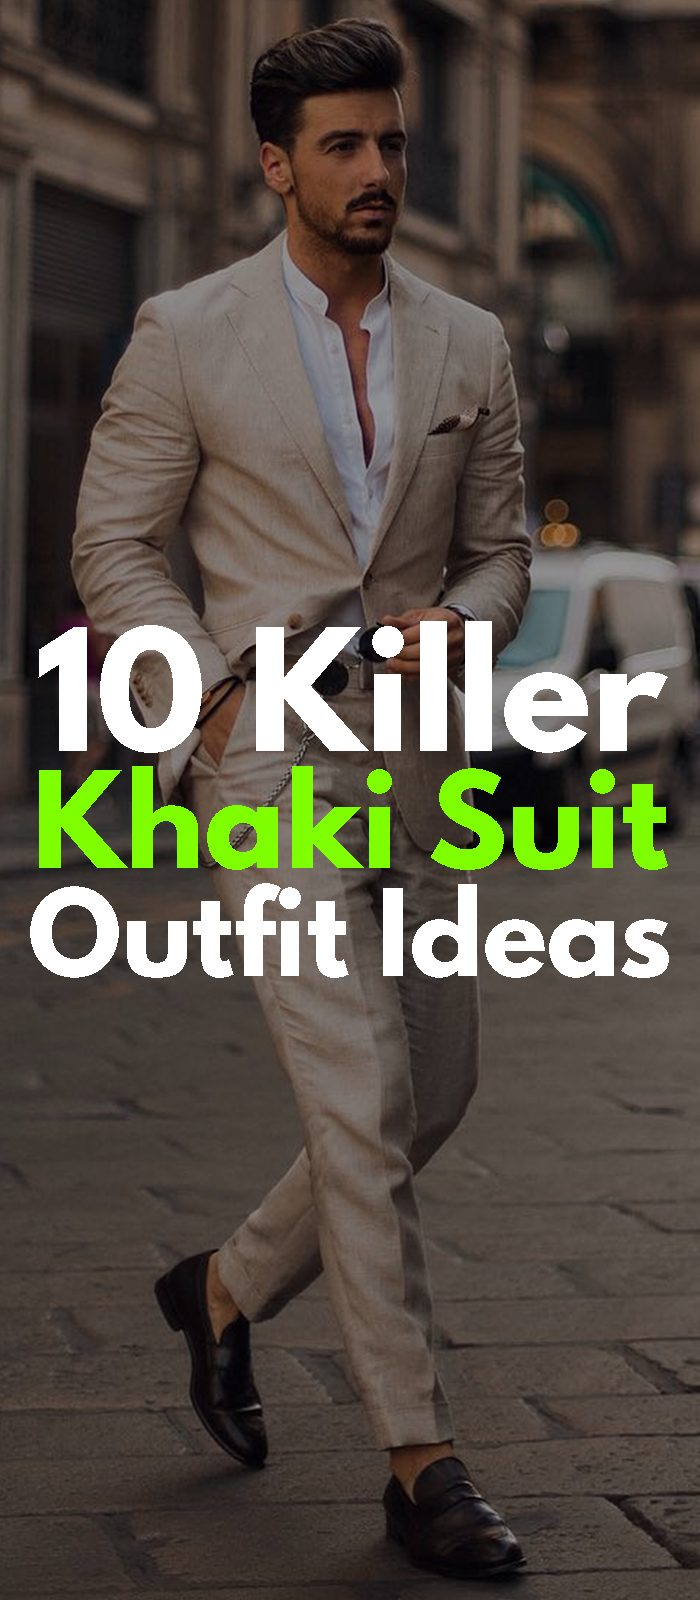 10 Killer Khaki Suit Outfit Ideas